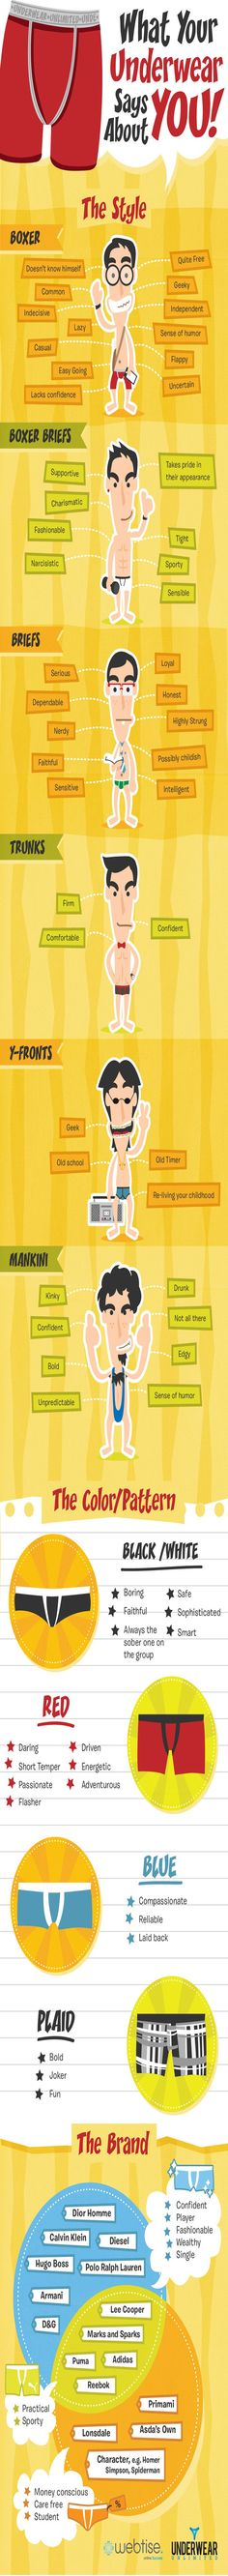 What Does Your Underwear Say About You? #infographic #infografía